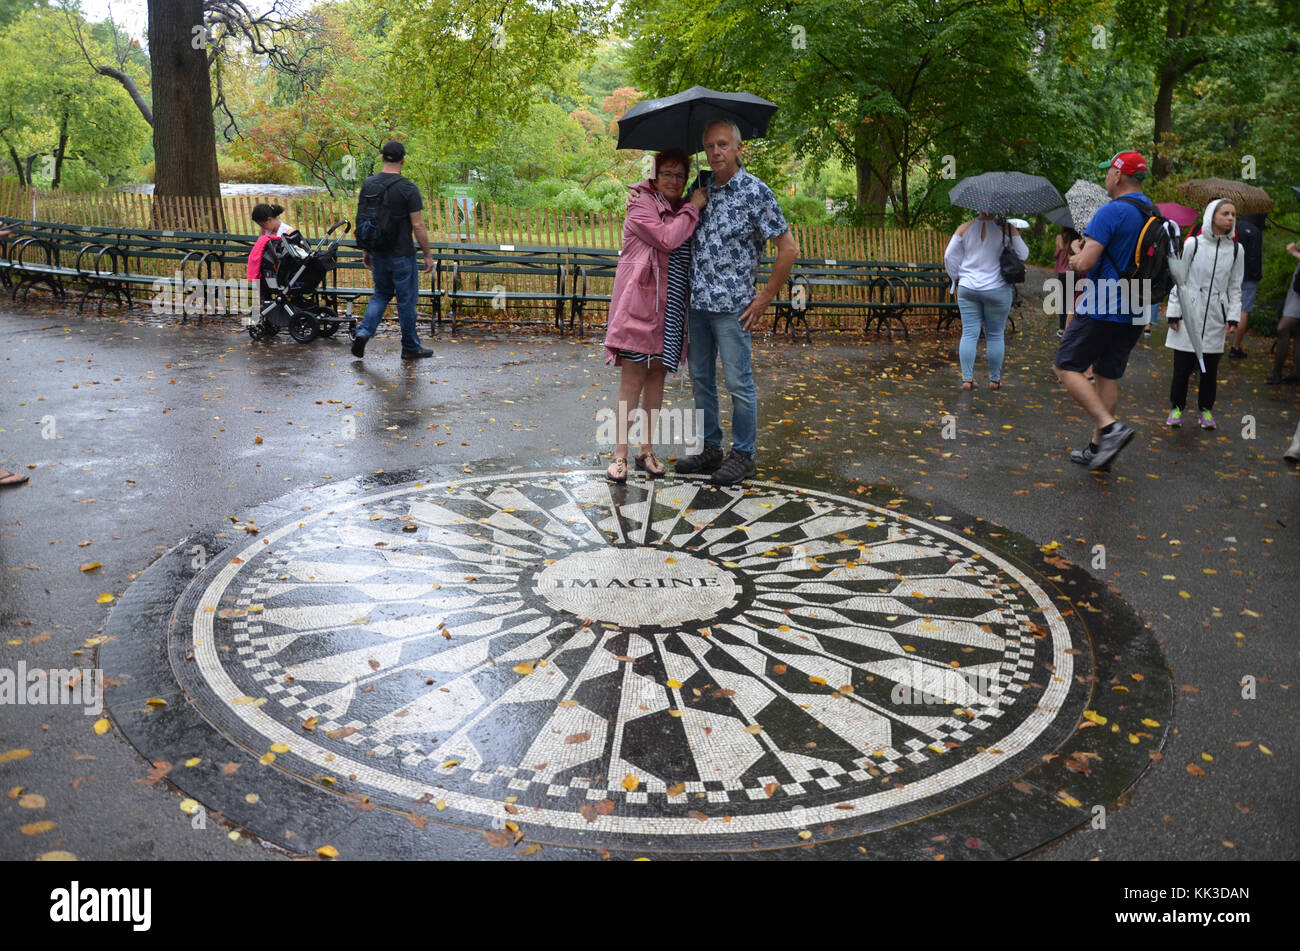 Tourists and fans pose by Strawberry Fields mosaic memorial in Central Park - Stock Image